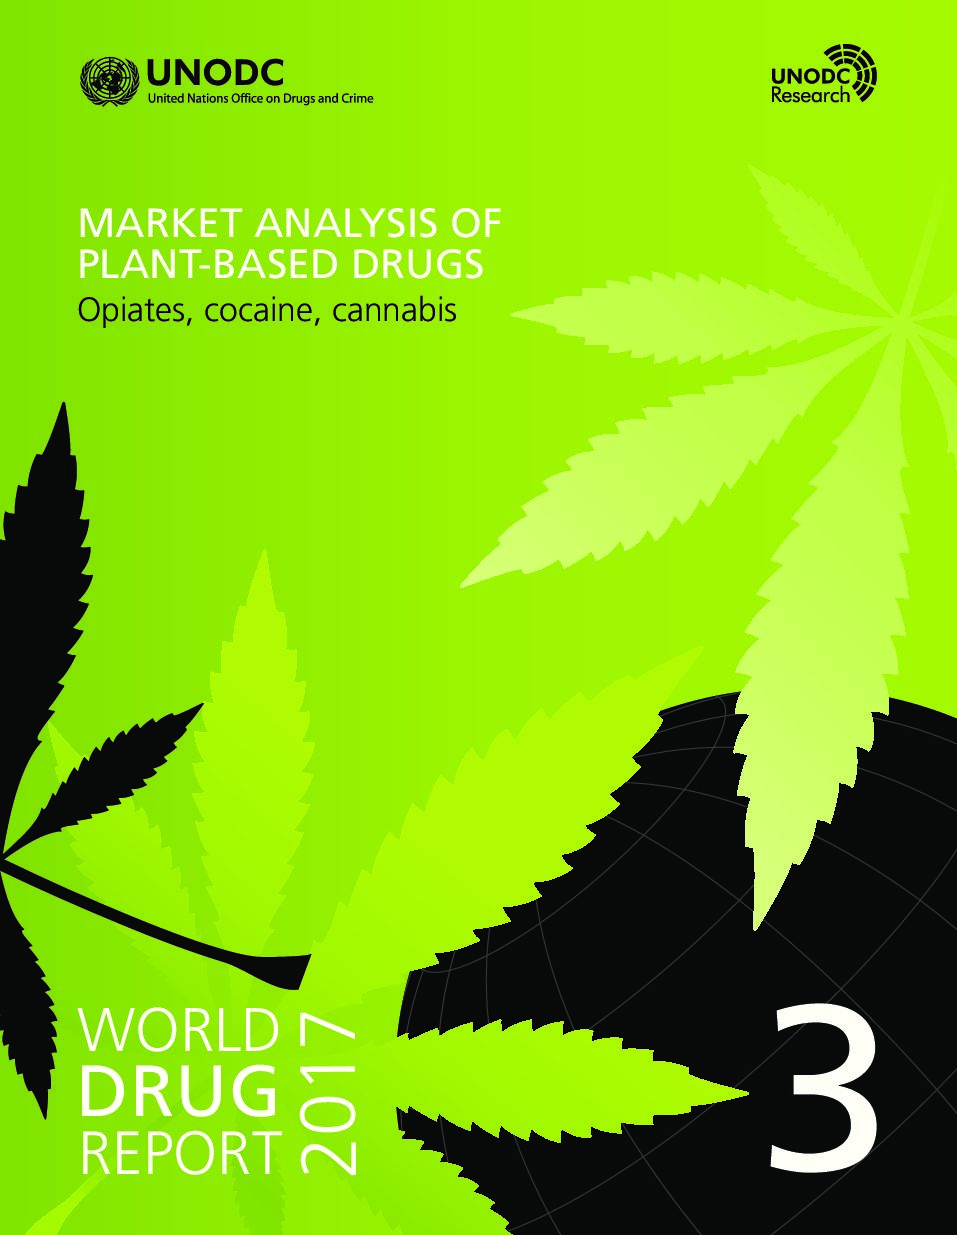 World Drug Report 2017. Part 3. MARKET ANALYSIS OF PLANT-BASED DRUGS Opiates, cocaine, cannabis